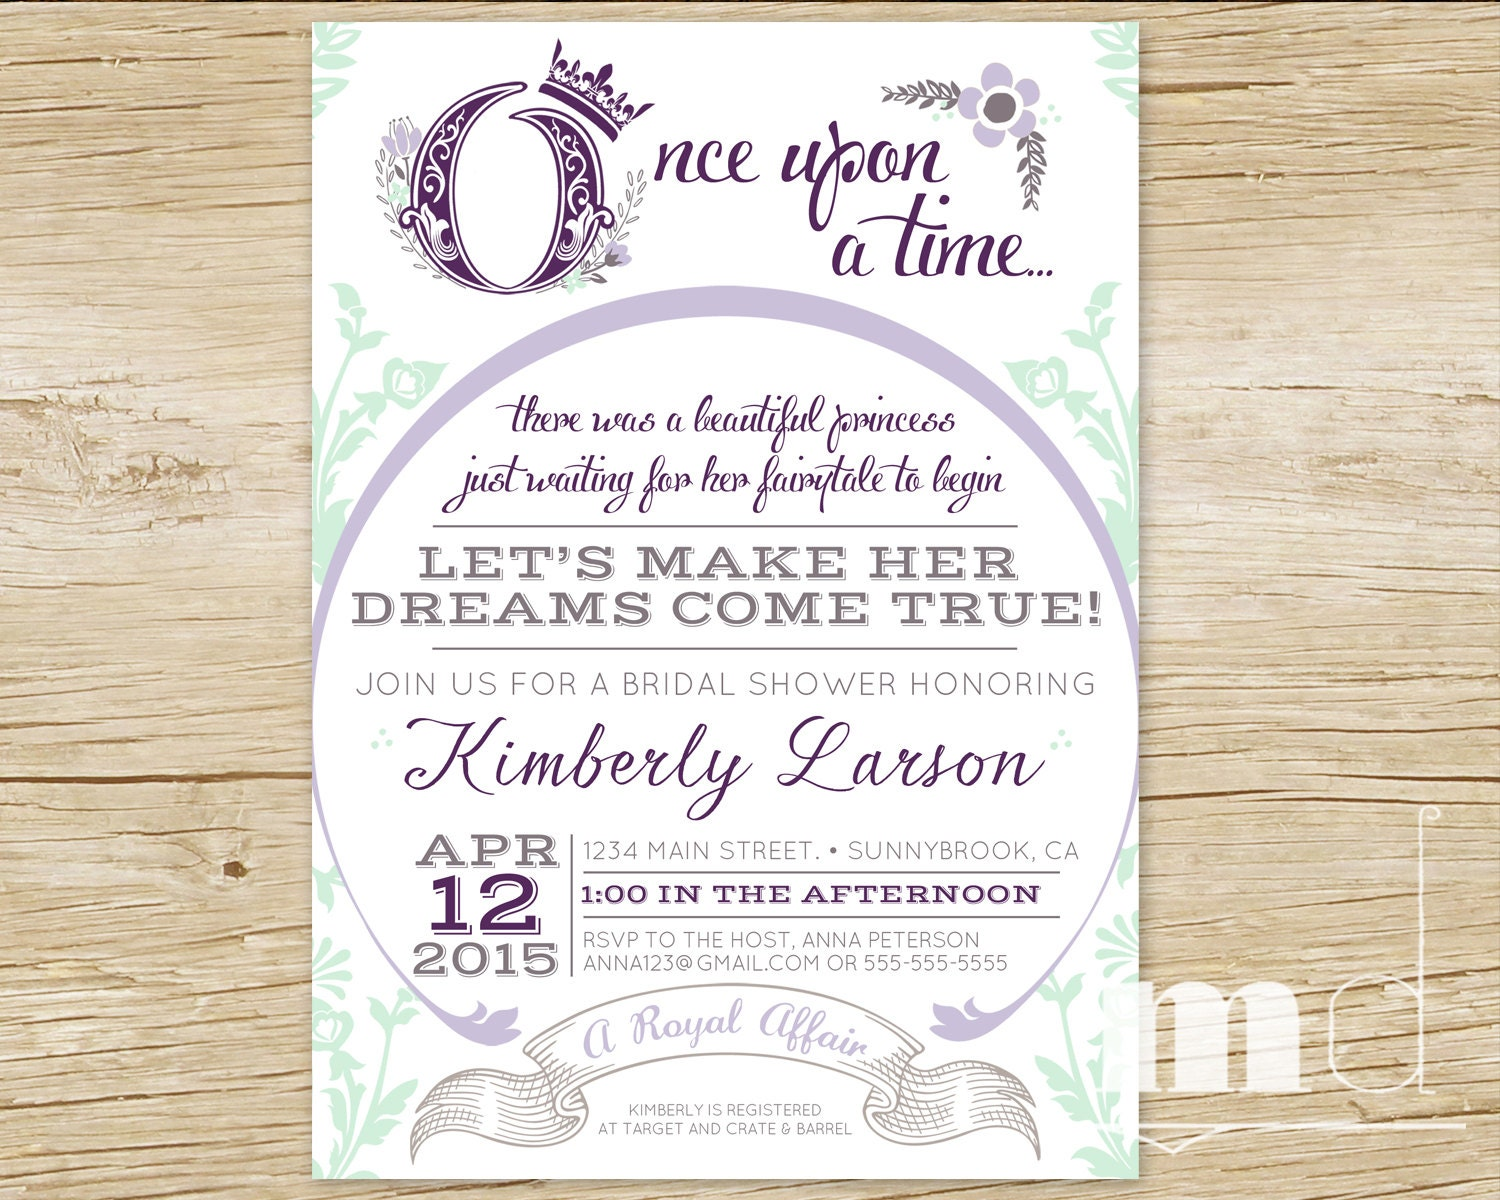 Once upon a time bridal shower invitation fairytale bridal zoom monicamarmolfo Gallery